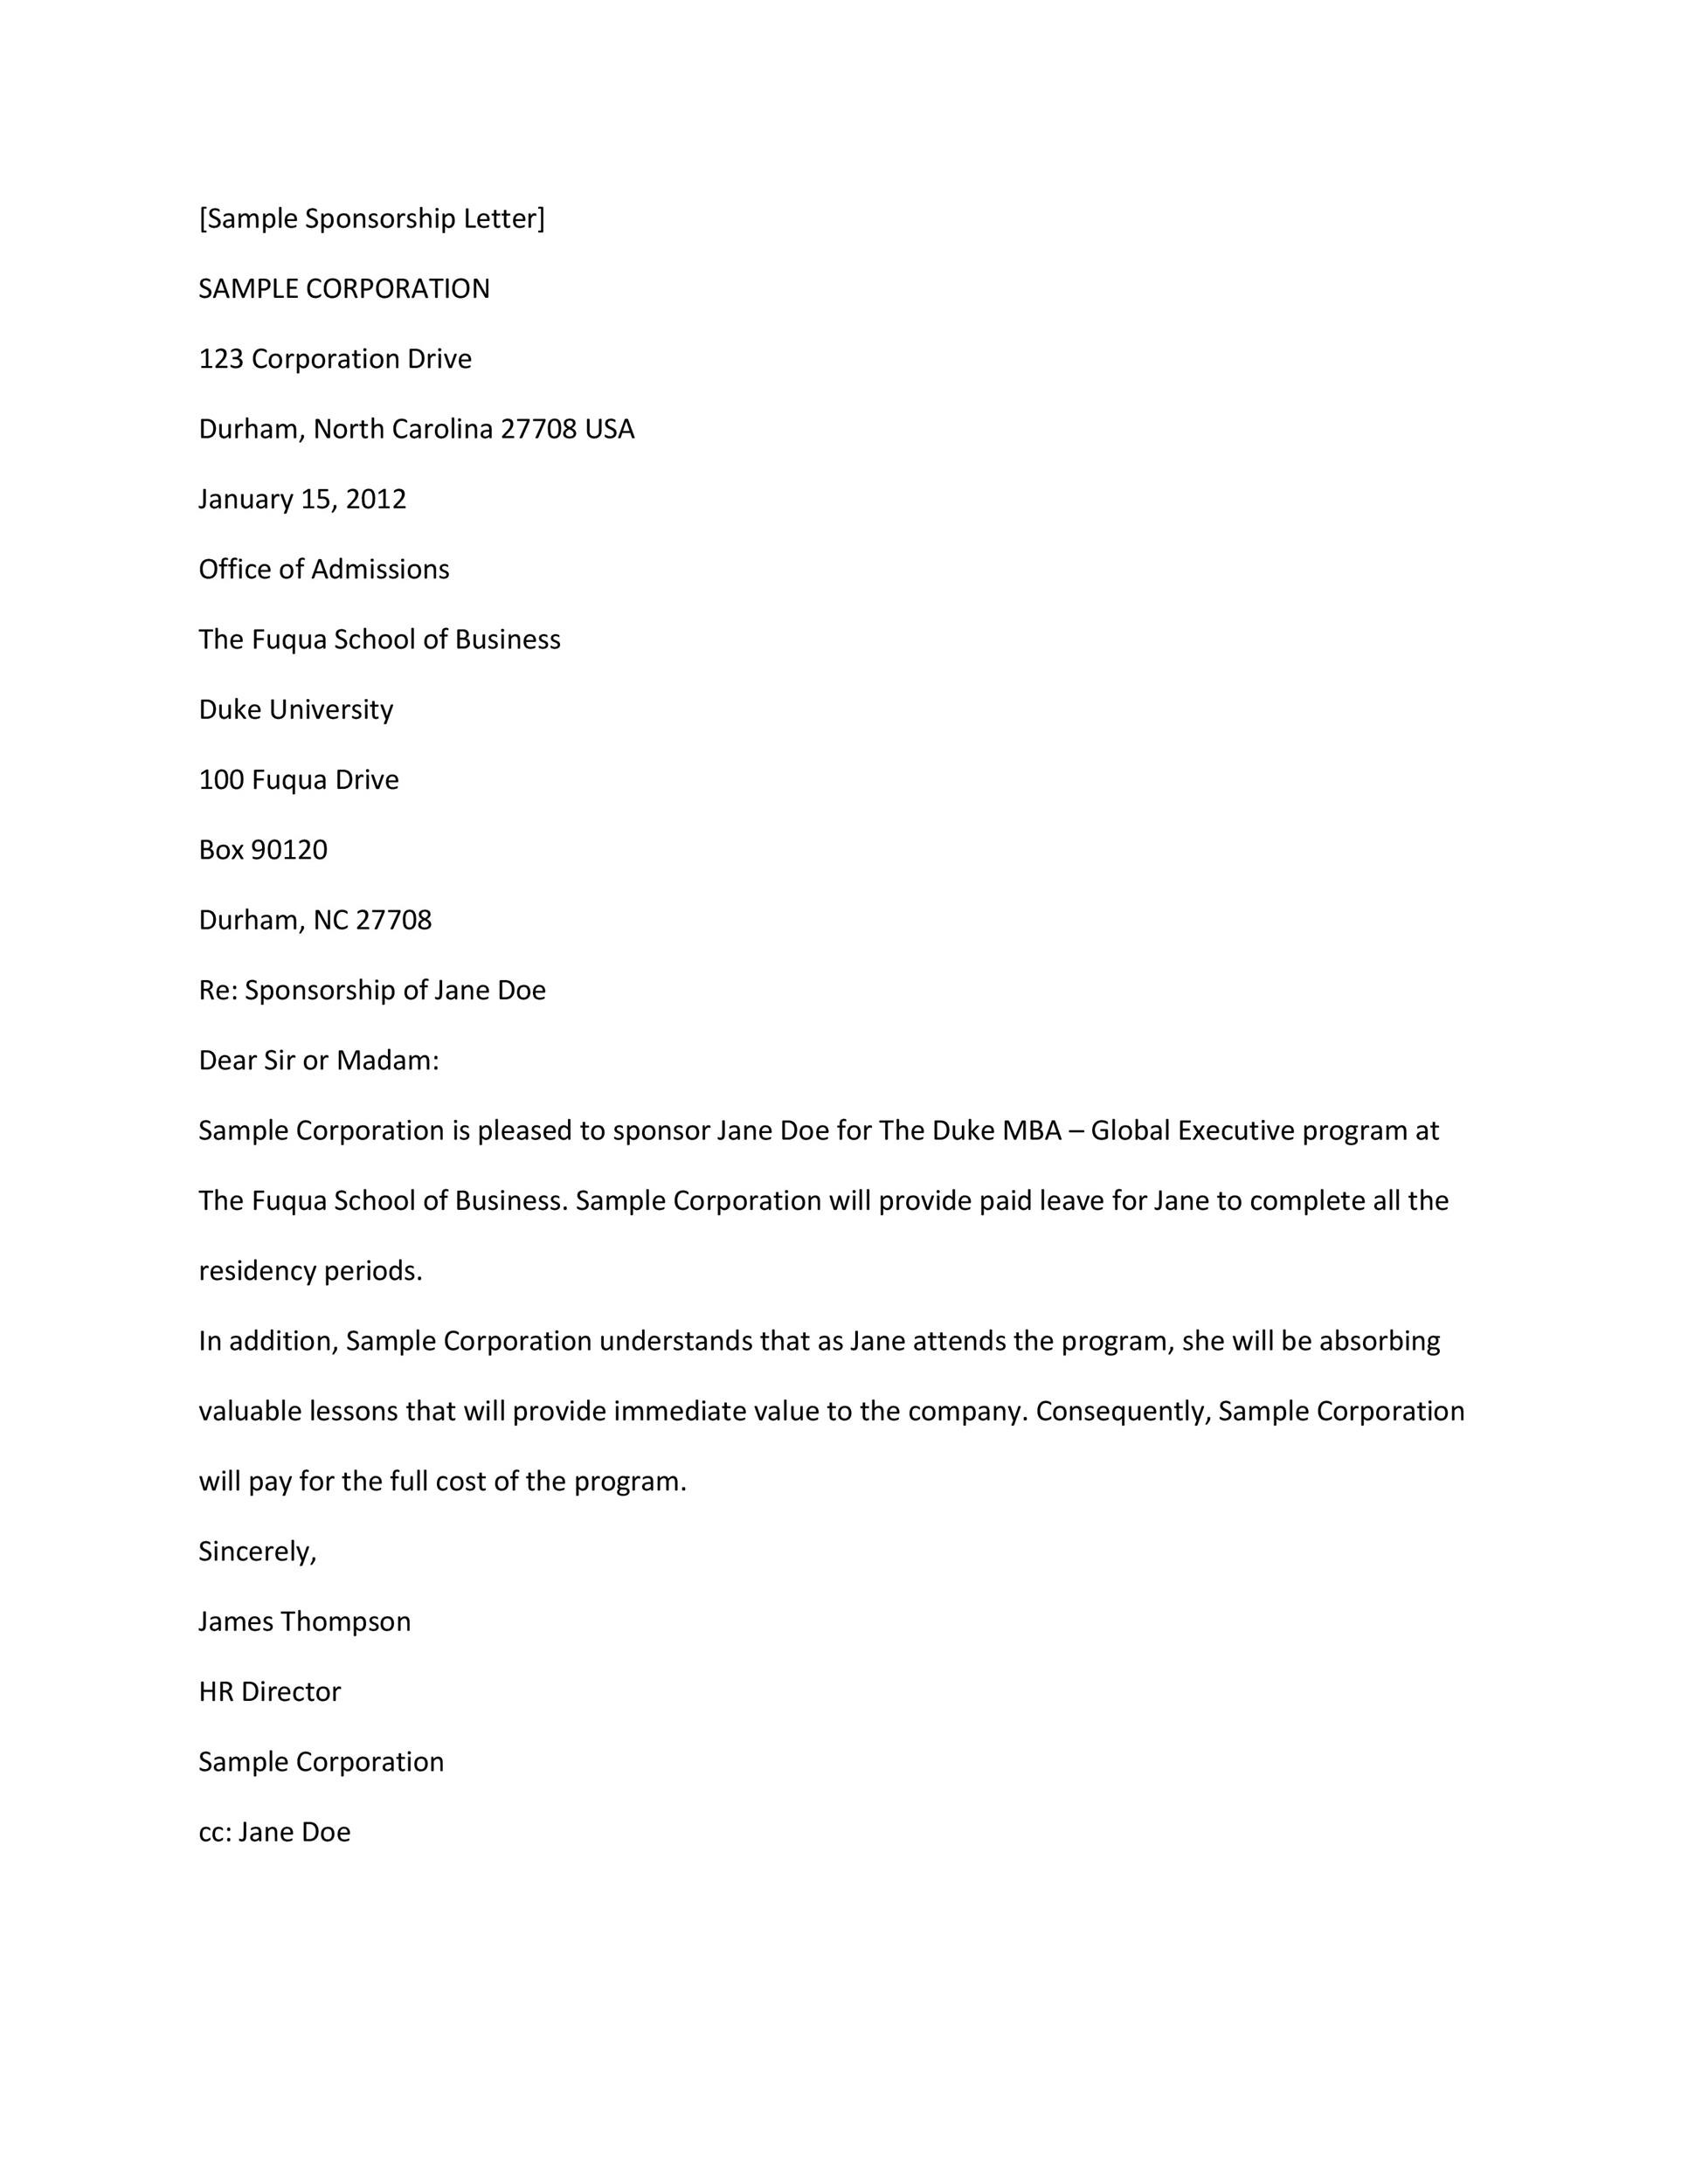 sponsorship letter template 24 - Sample Email Cover Letter